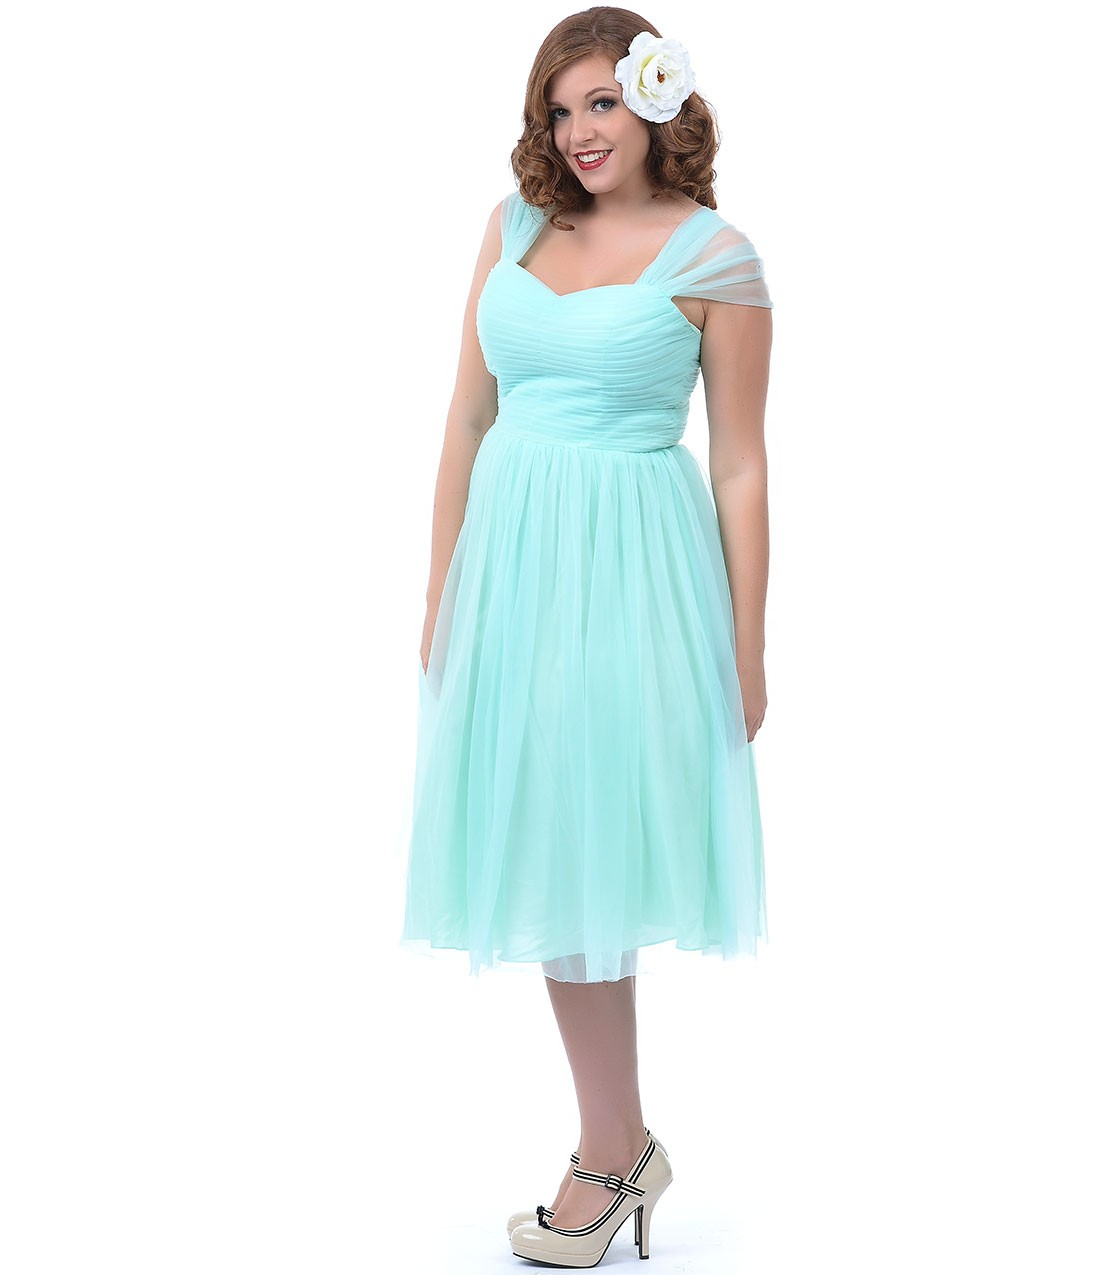 Brides guide to plus size bridesmaid dresses for Wedding dress big size